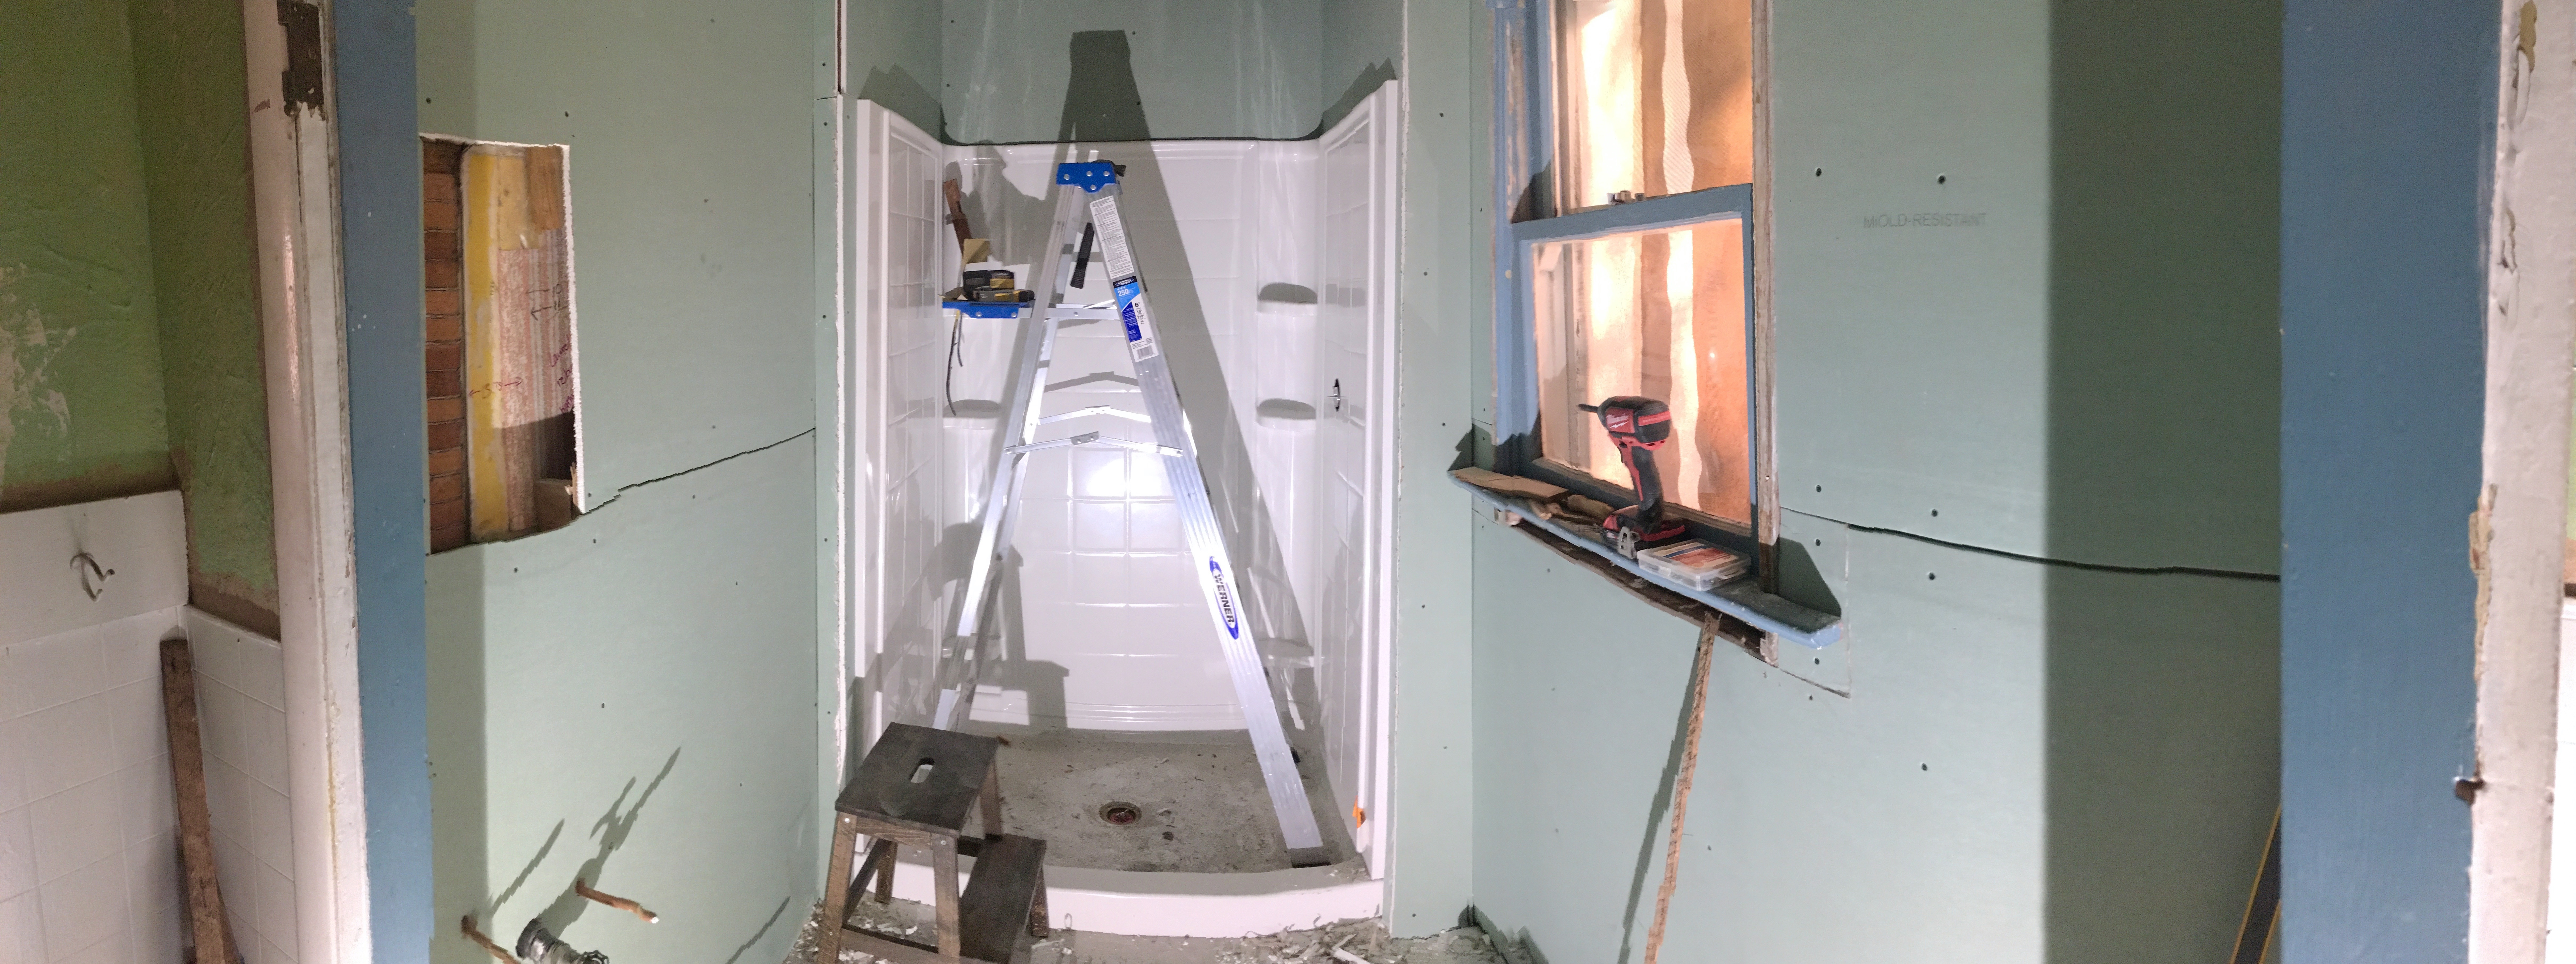 Berrybrier | Drywalled Bathroom